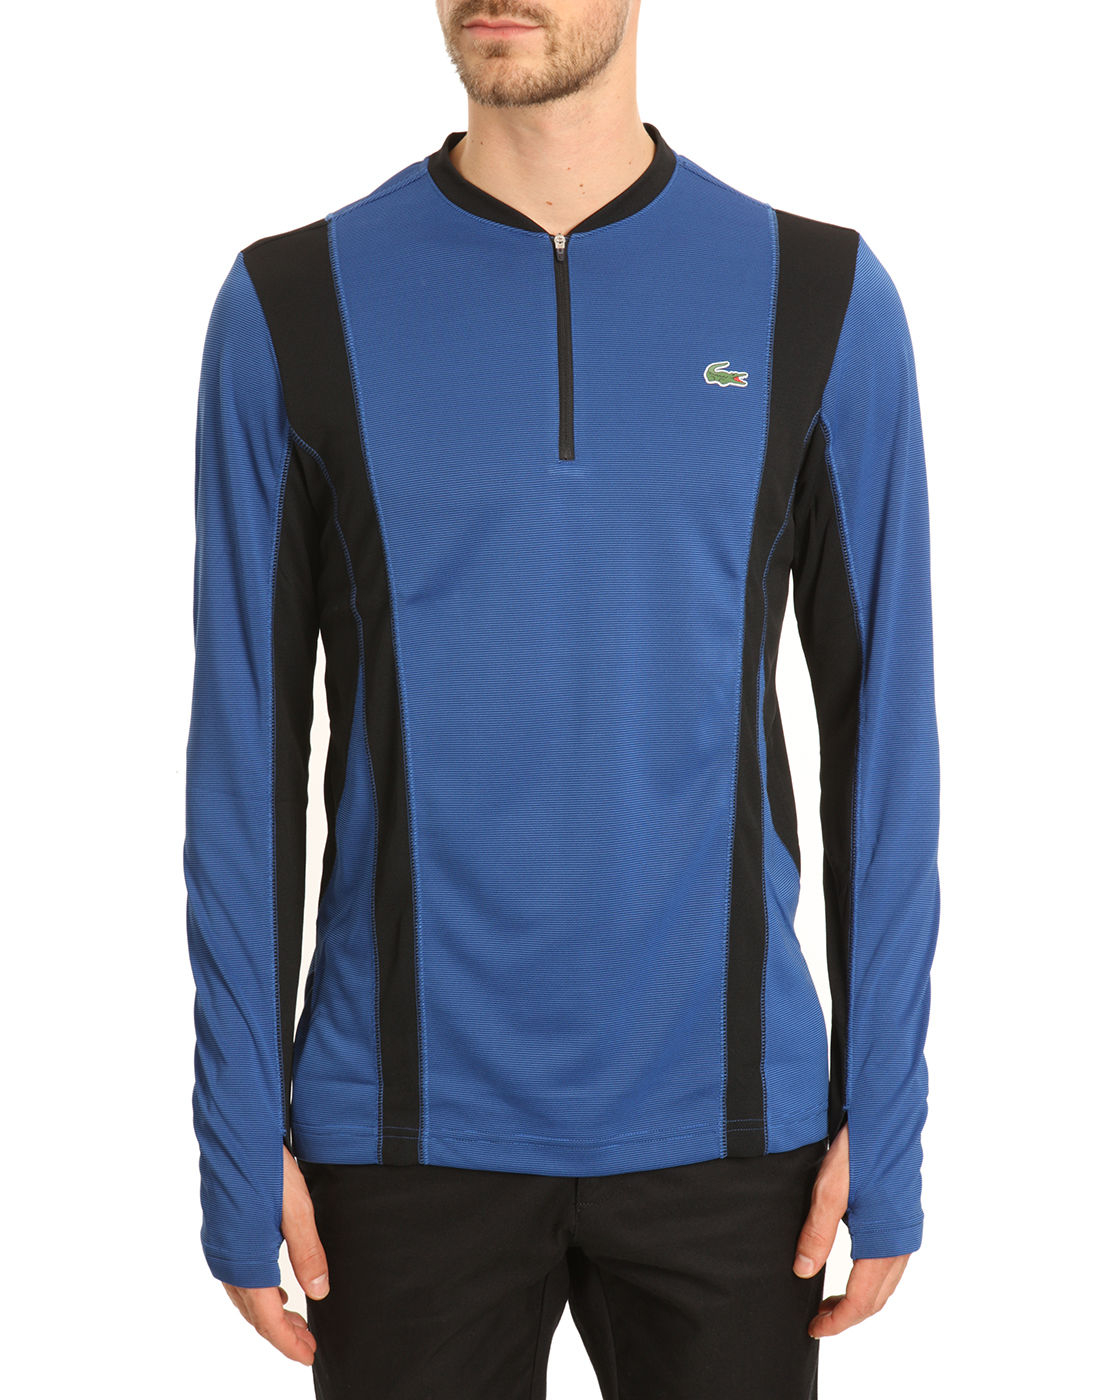 Lacoste Black And Royal Blue Long Sleeved Zip Collar T